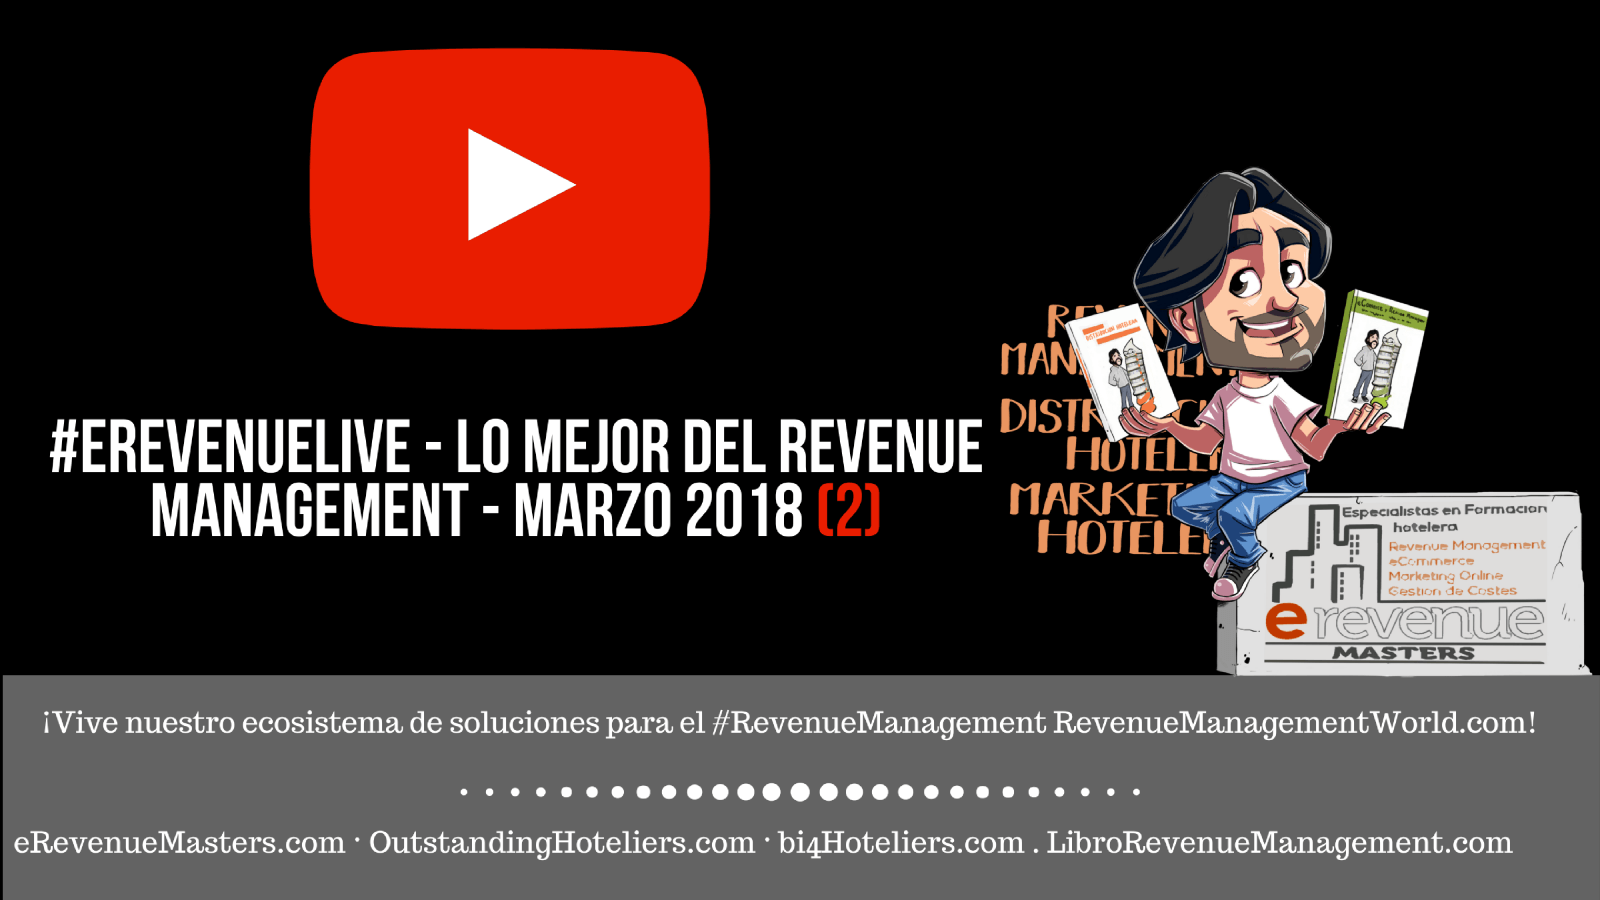 (video & Podcast) #eRevenueLive - Lo mejor del Revenue Management - marzo 2018 (2)